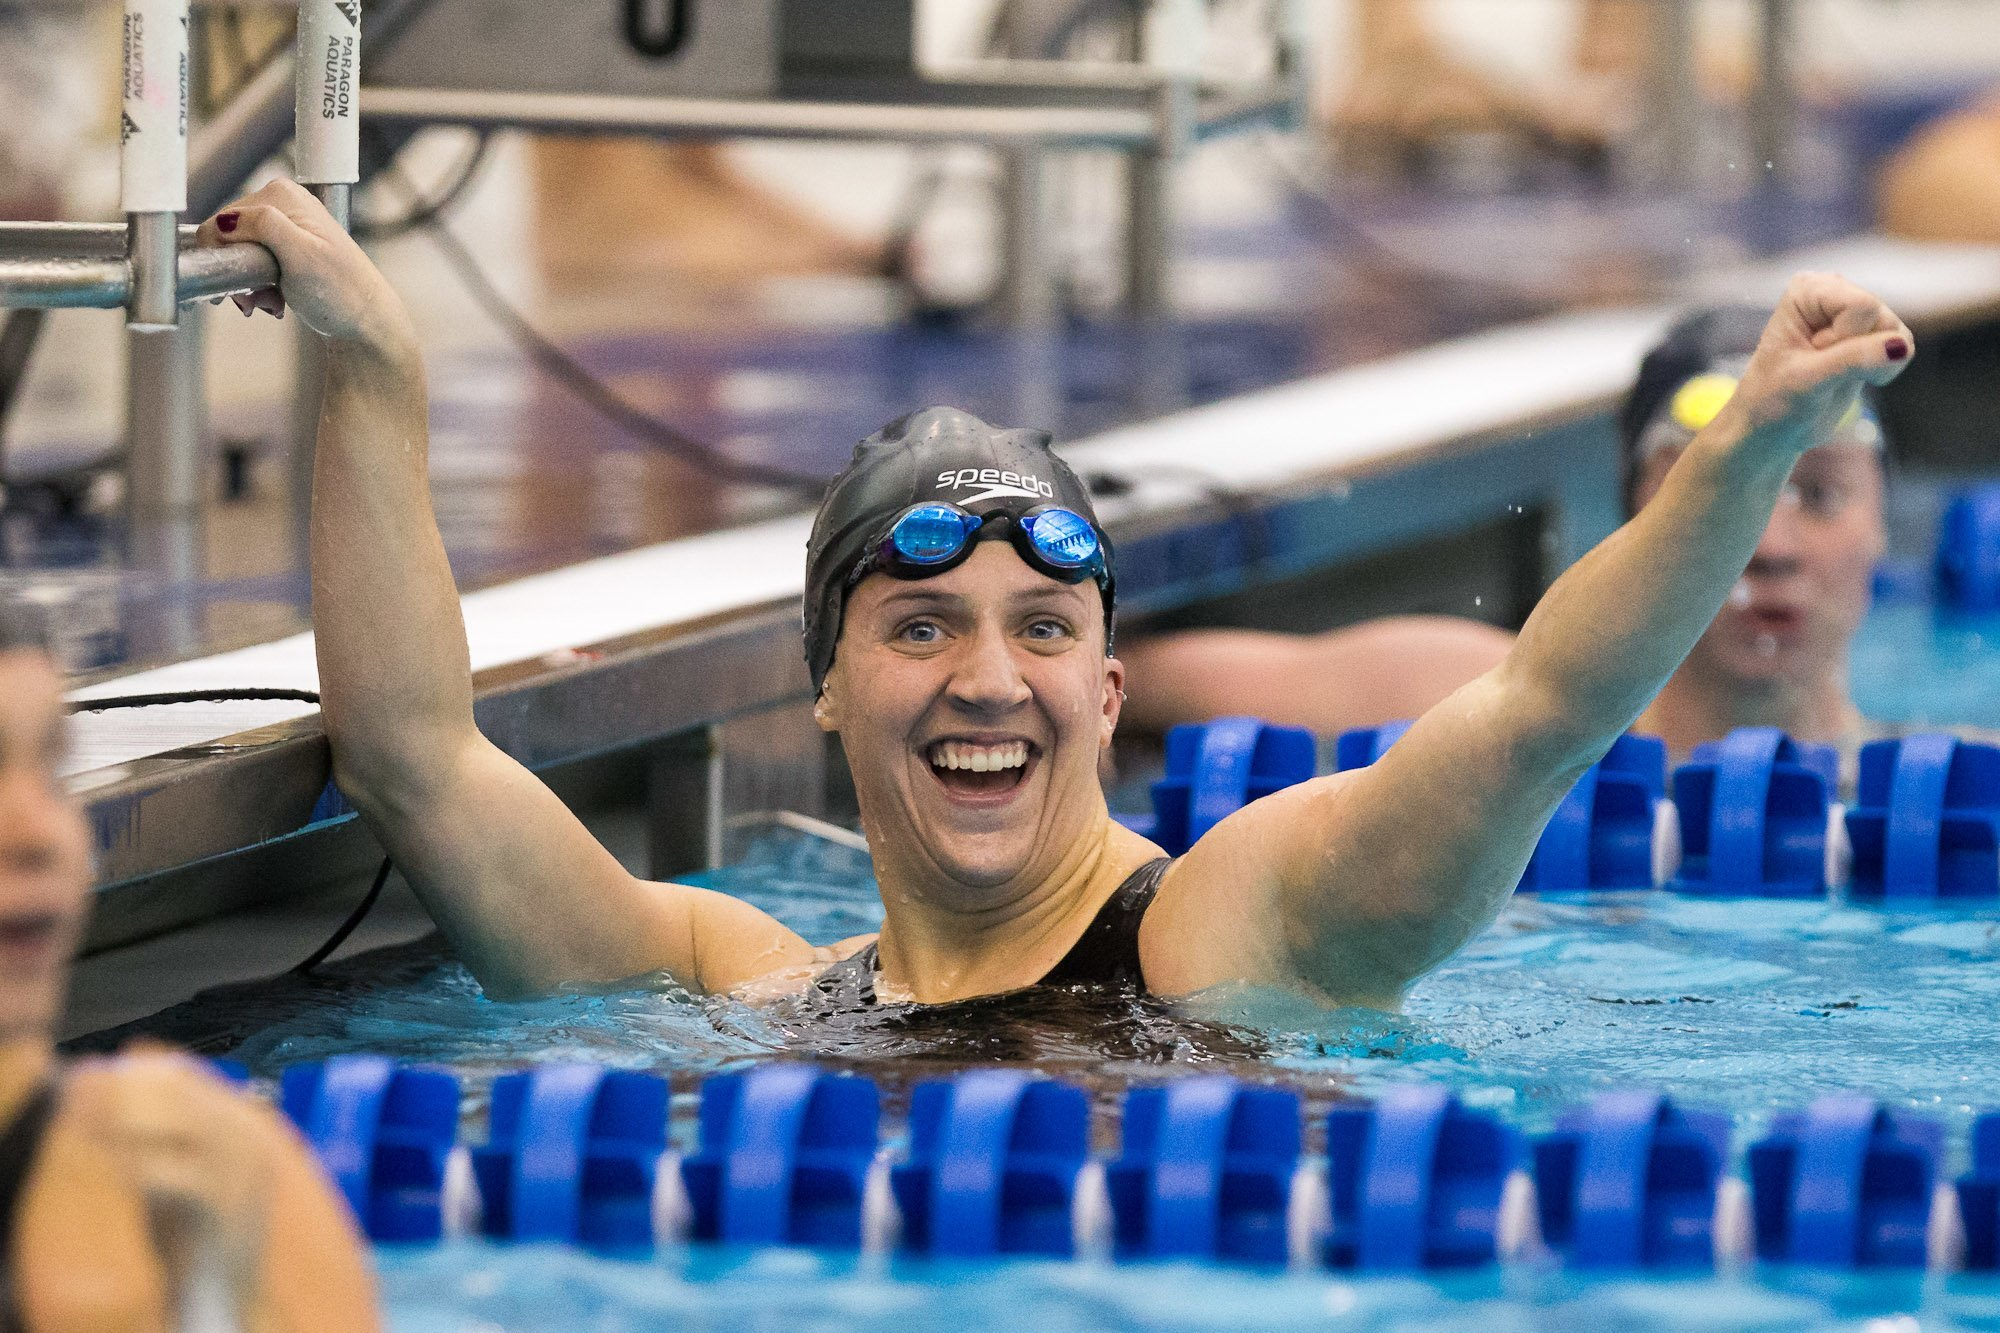 Virginia Wins Just 2 Events, Still Pushes Lead Past 200 ...